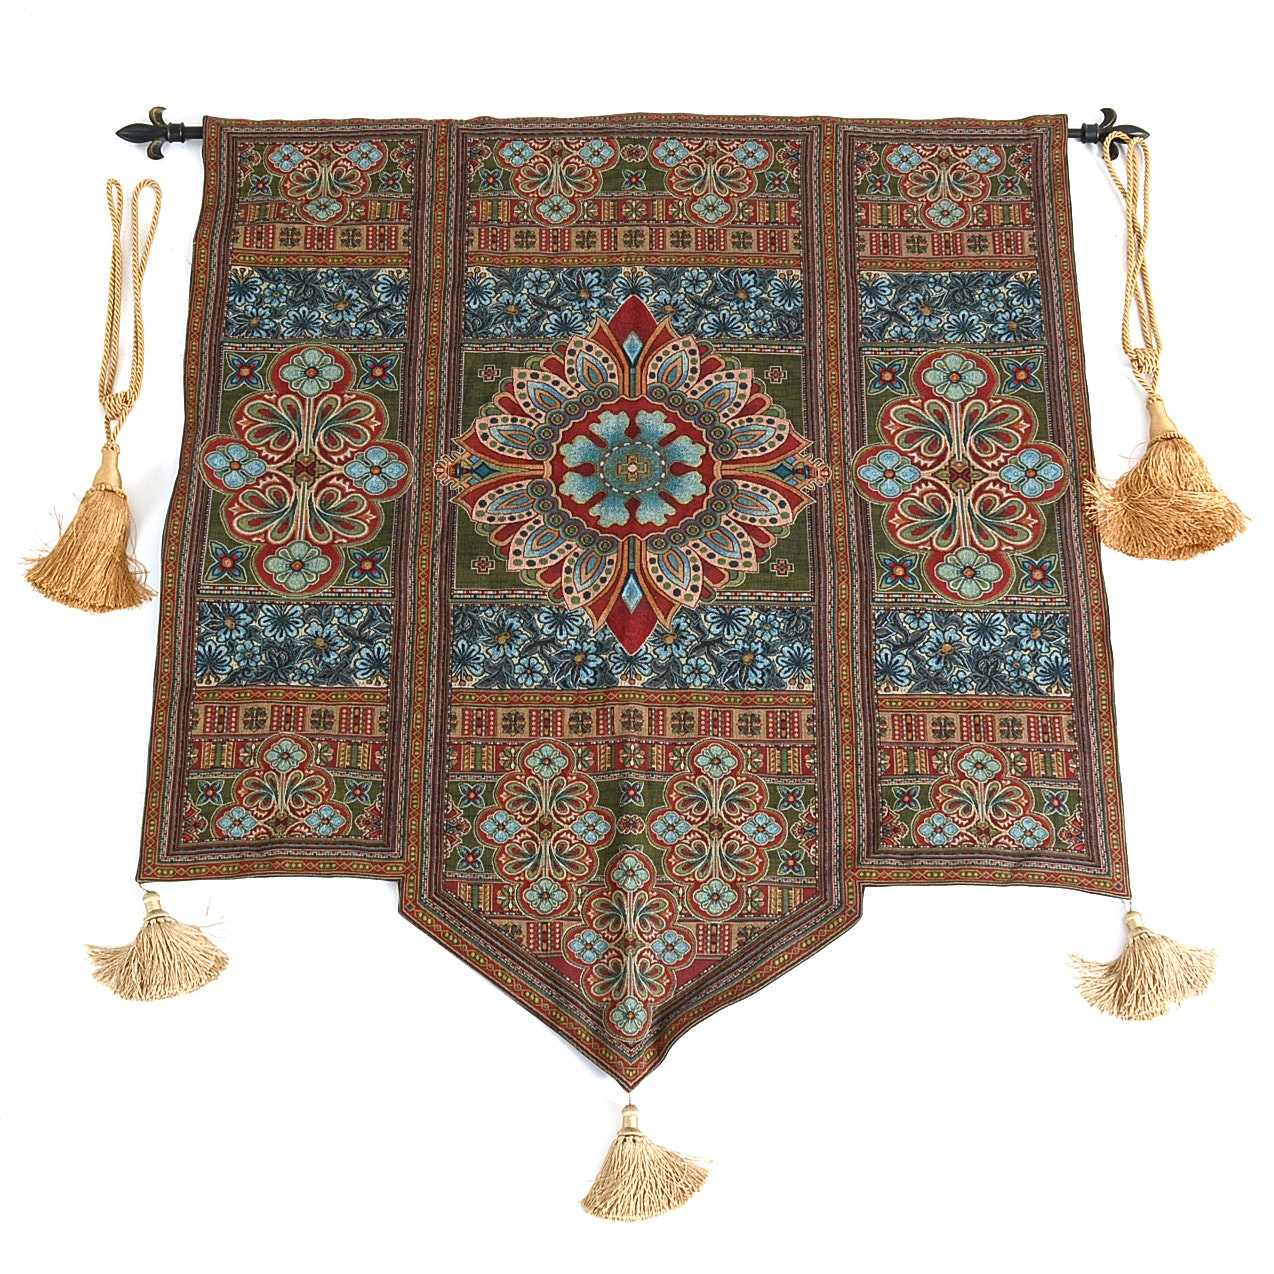 Riddle Home & Gift Reproduction Hanging Tapestry